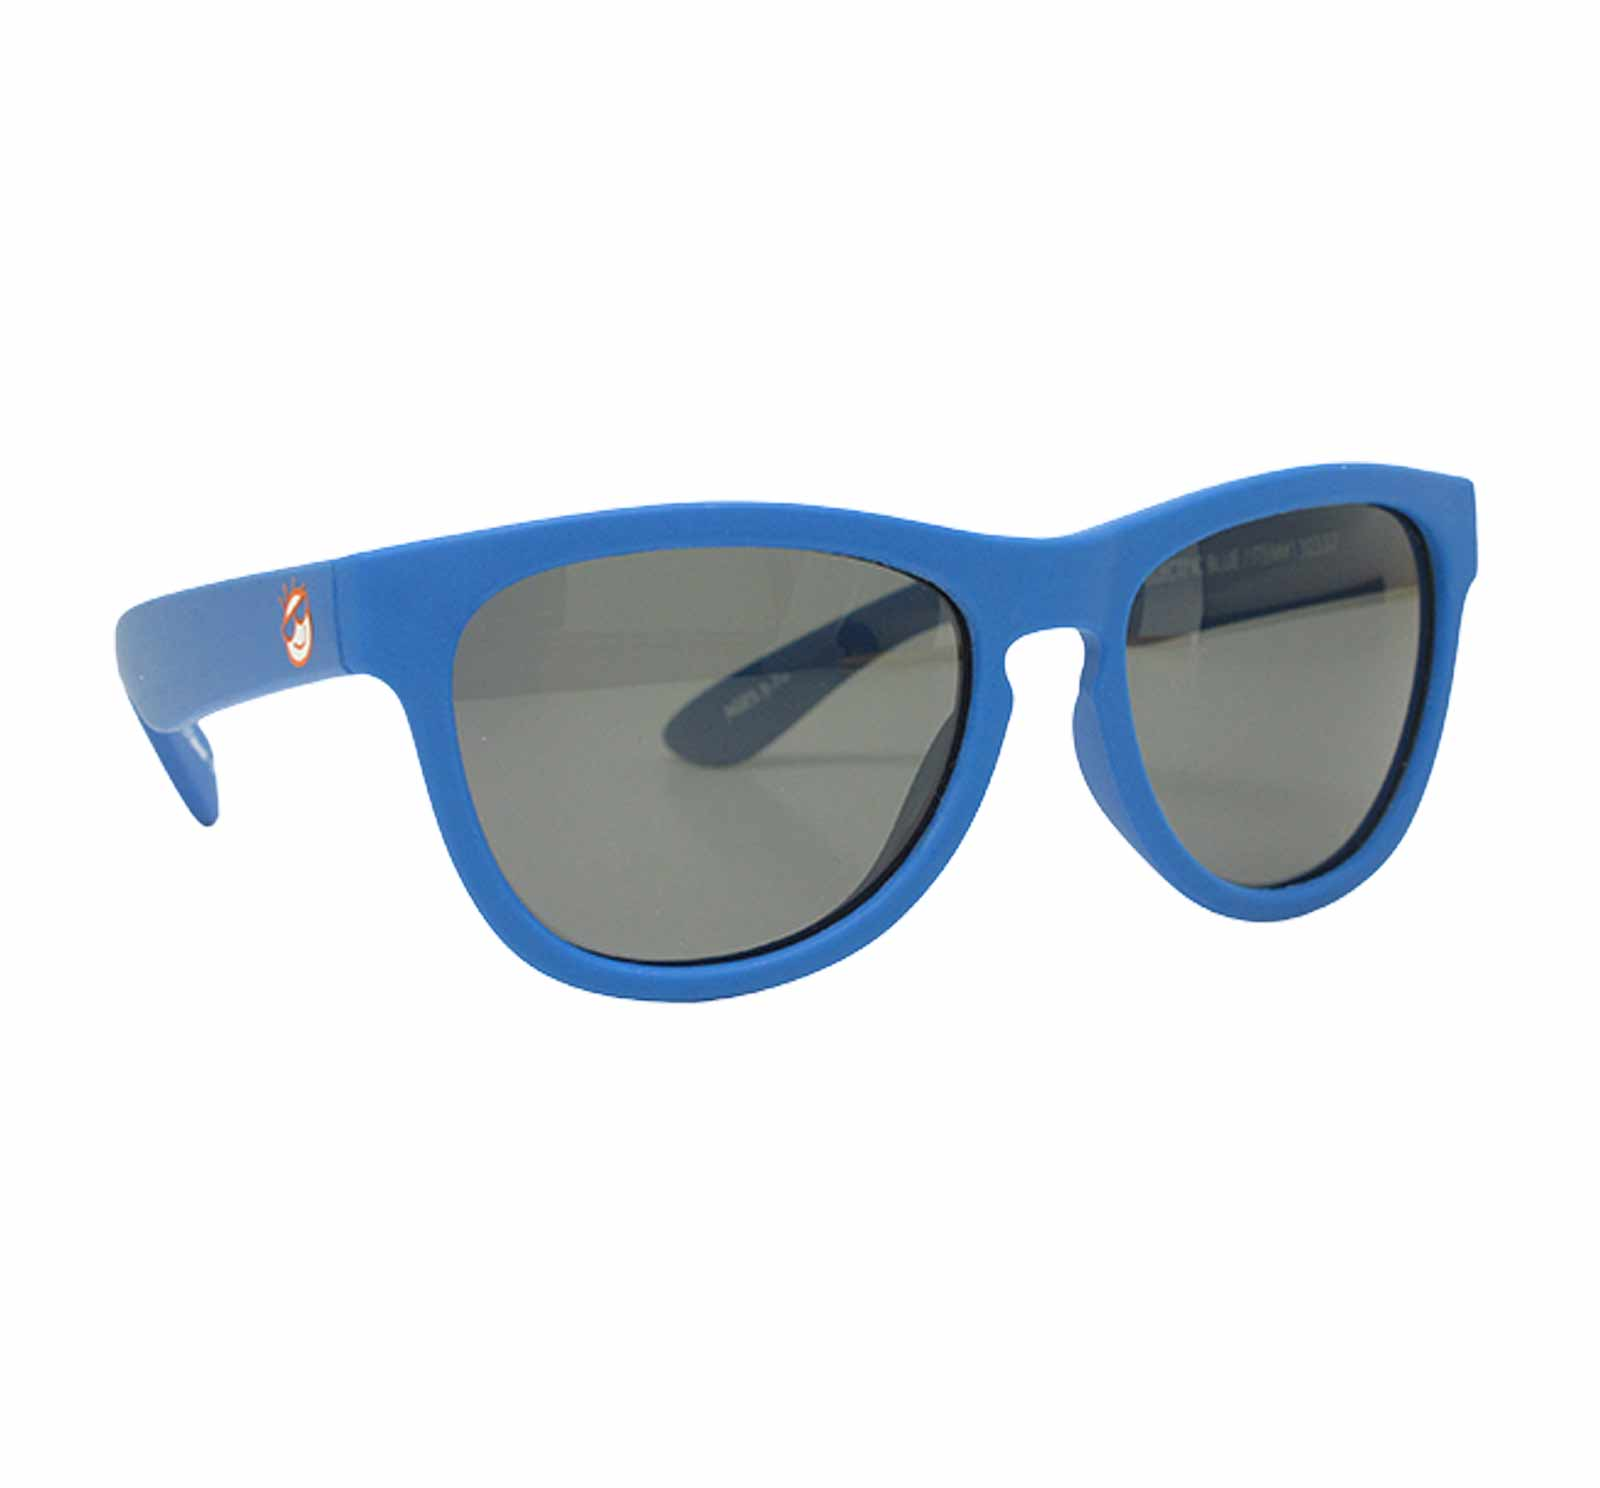 Mini Shades Classic Kid's Polarized Sunglasses (Ages 3-7) - Electric Blue